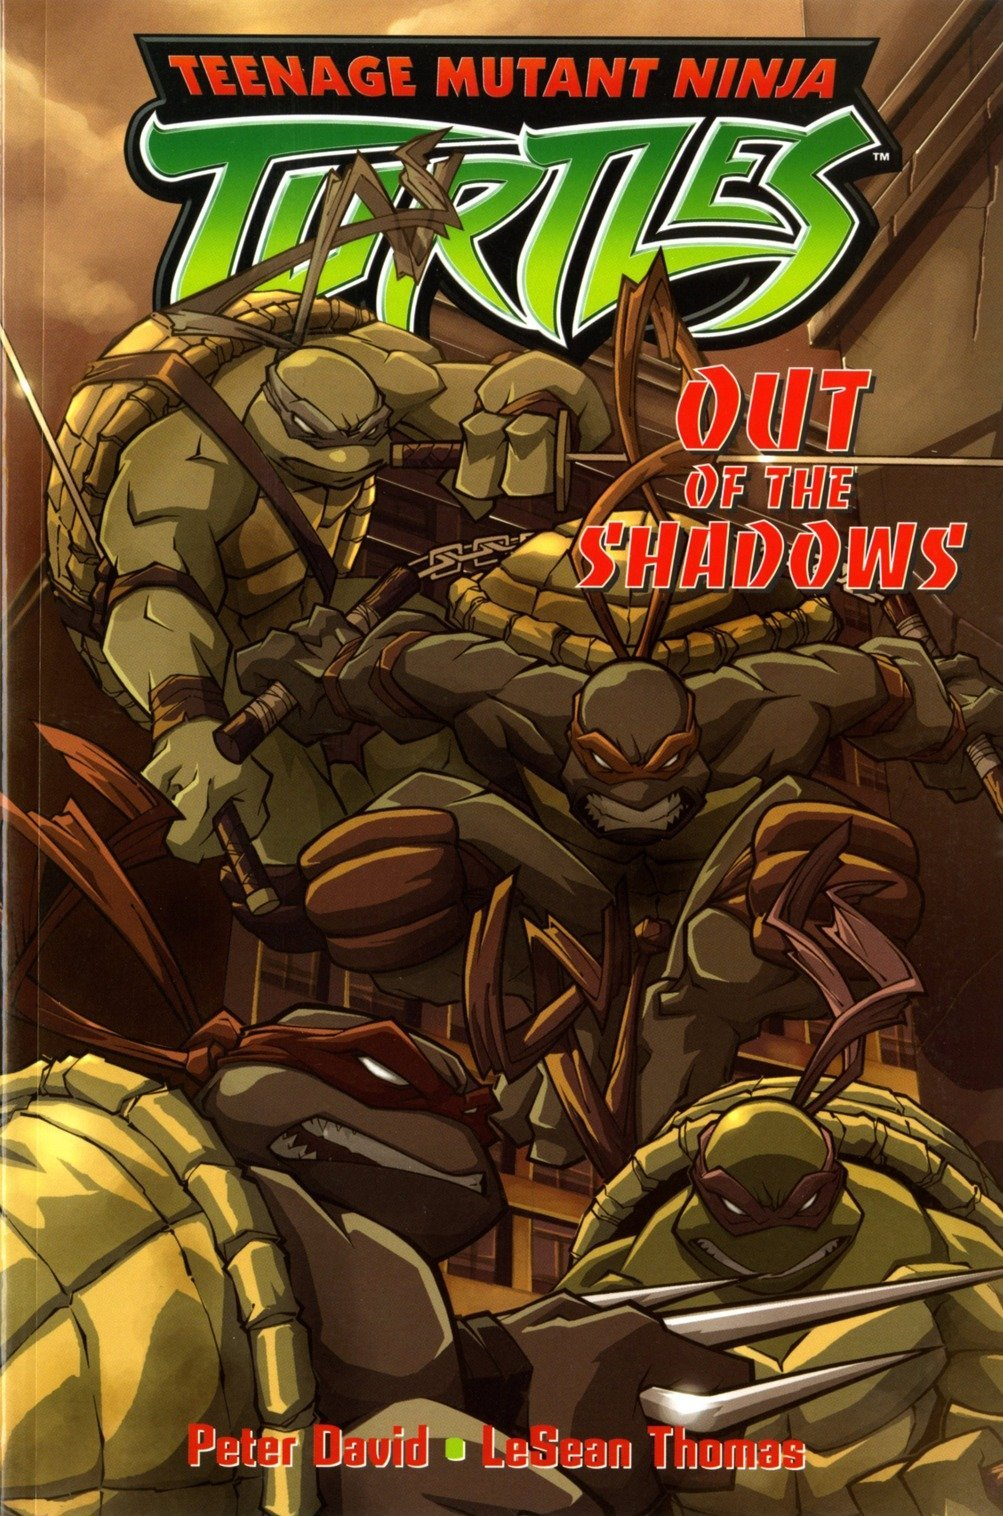 Teenage Mutant Ninja Turtles Out Of The Shadows Teenage Mutant Ninja Turtles Titan Books V 2 David Peter Thomas Lesean 9781845761462 Amazon Com Books